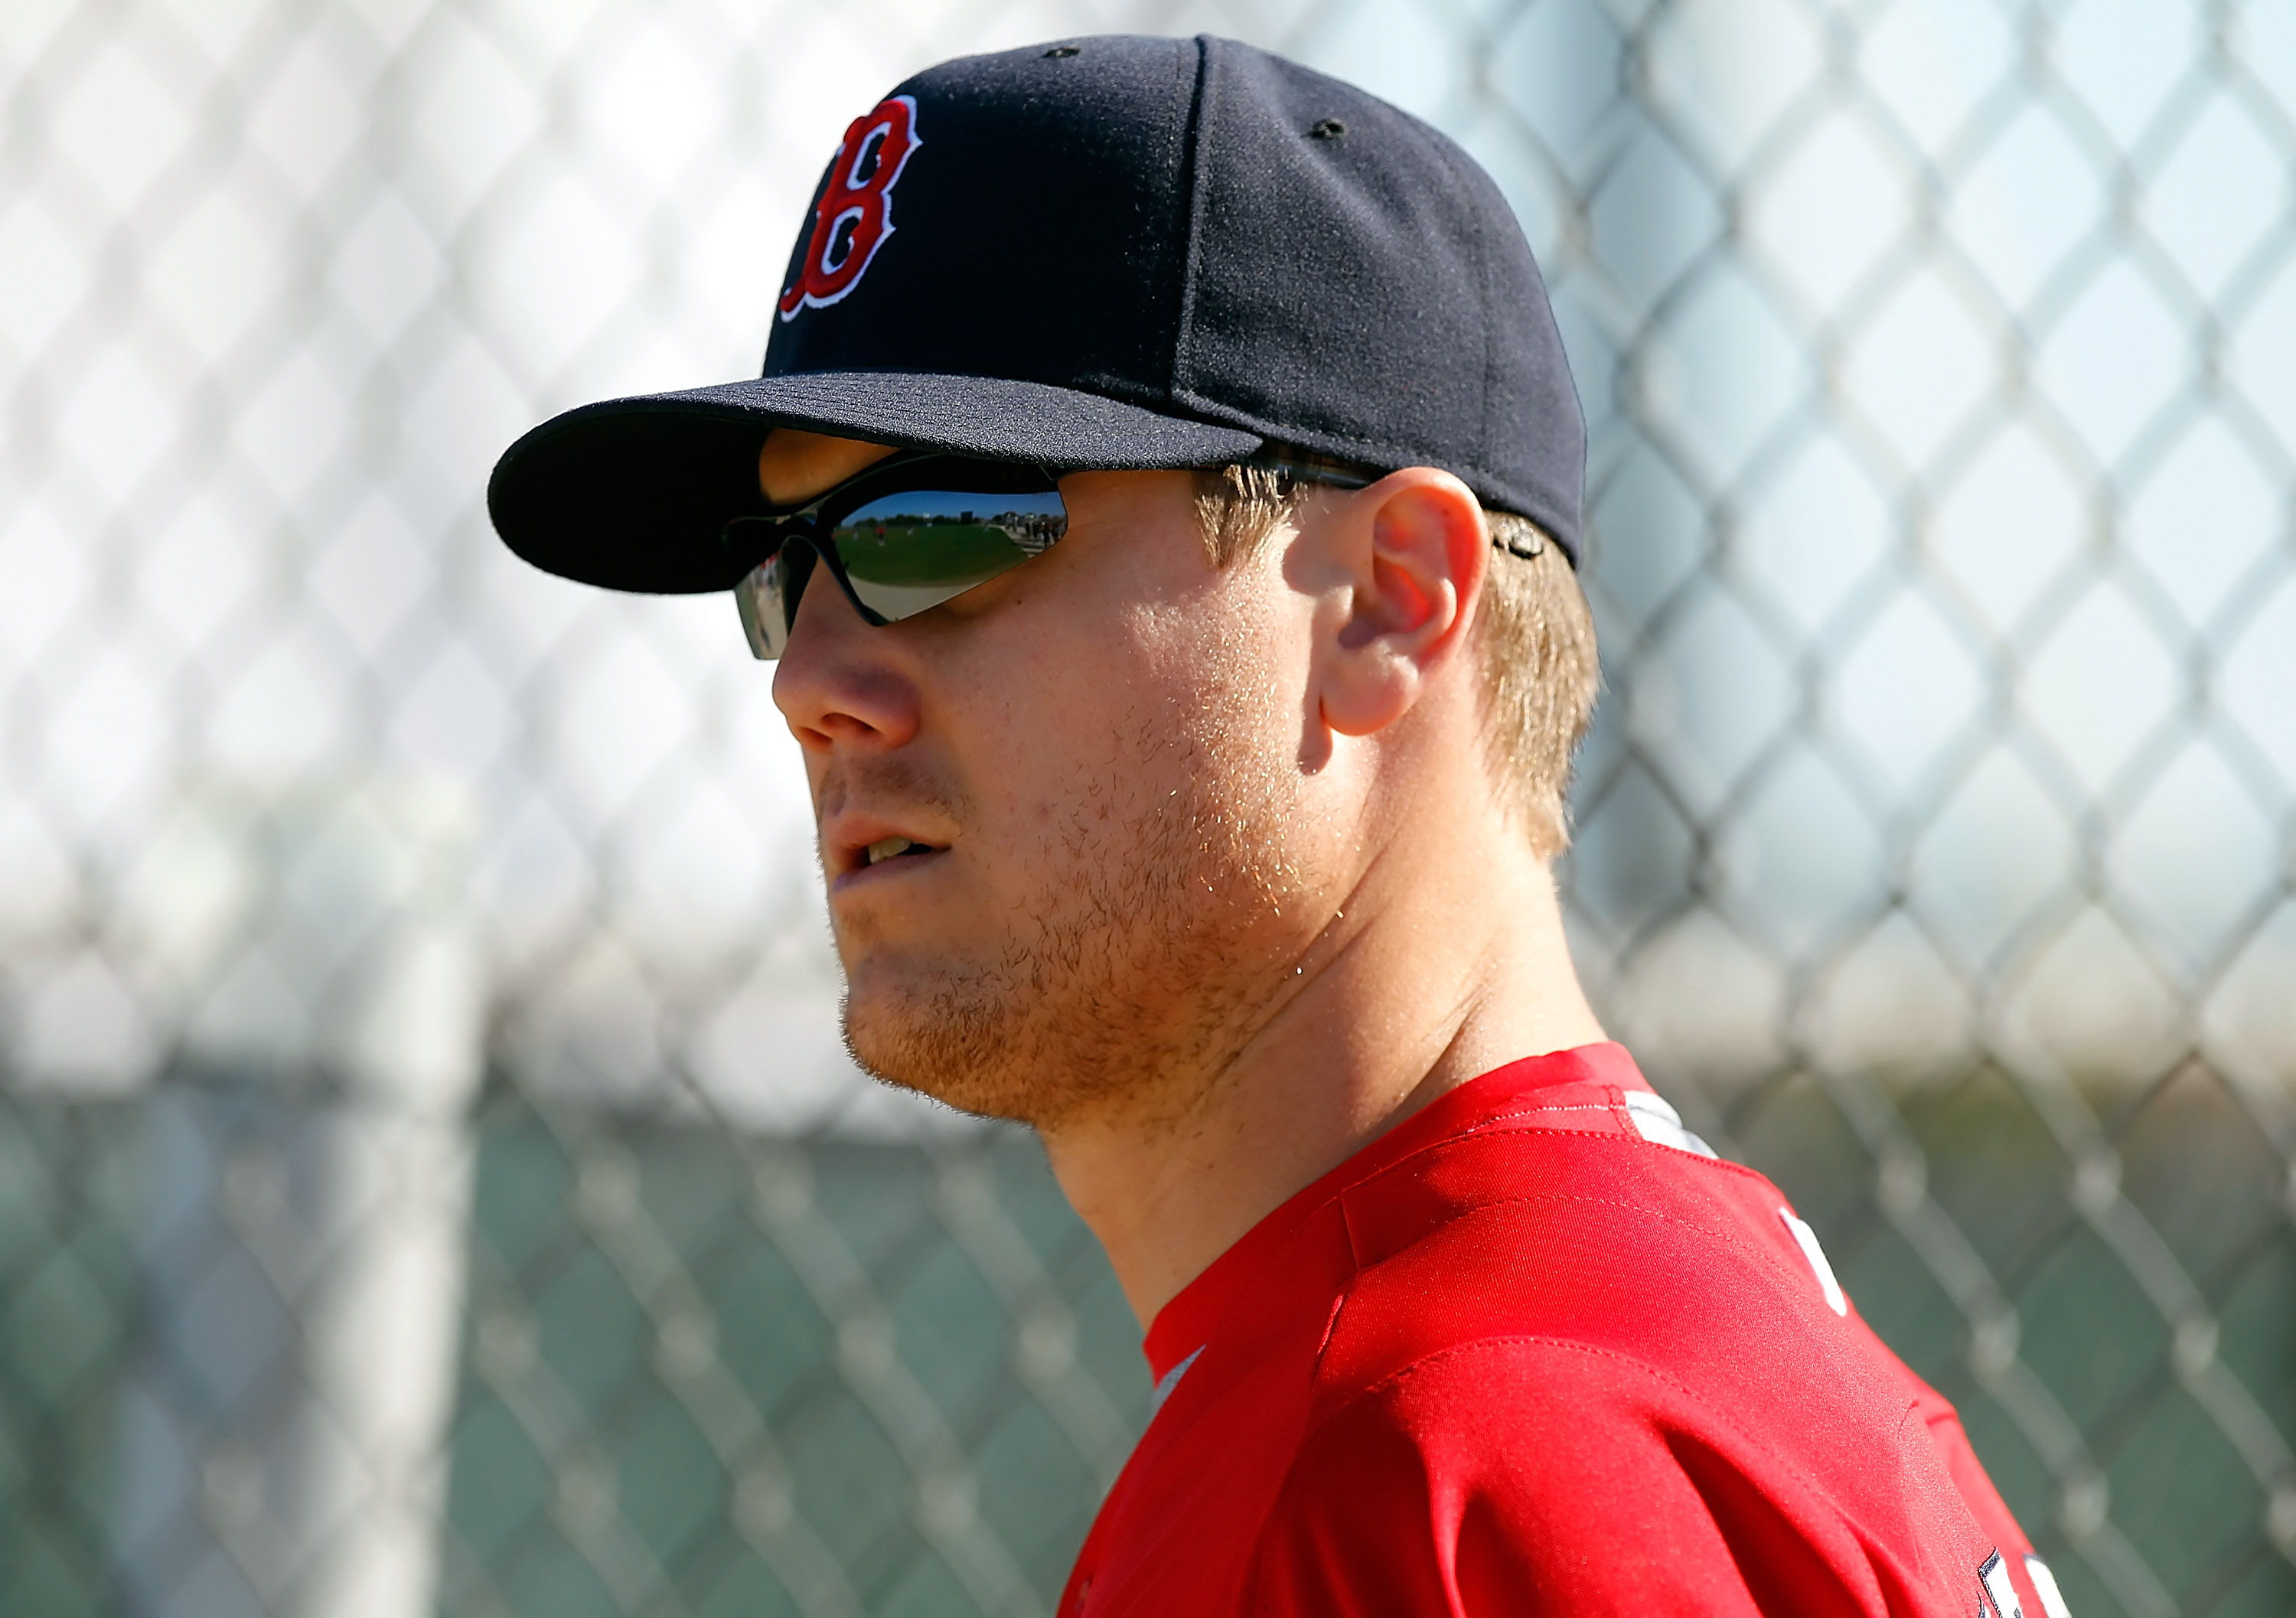 FORT MYERS, FL - FEBRUARY 19:  Pitcher Jonathan Papelbon #58 of the Boston Red Sox warms up during a Spring Training Workout Session at the Red Sox Player Development Complex on February 19, 2011 in Fort Myers, Florida.  (Photo by J. Meric/Getty Images)